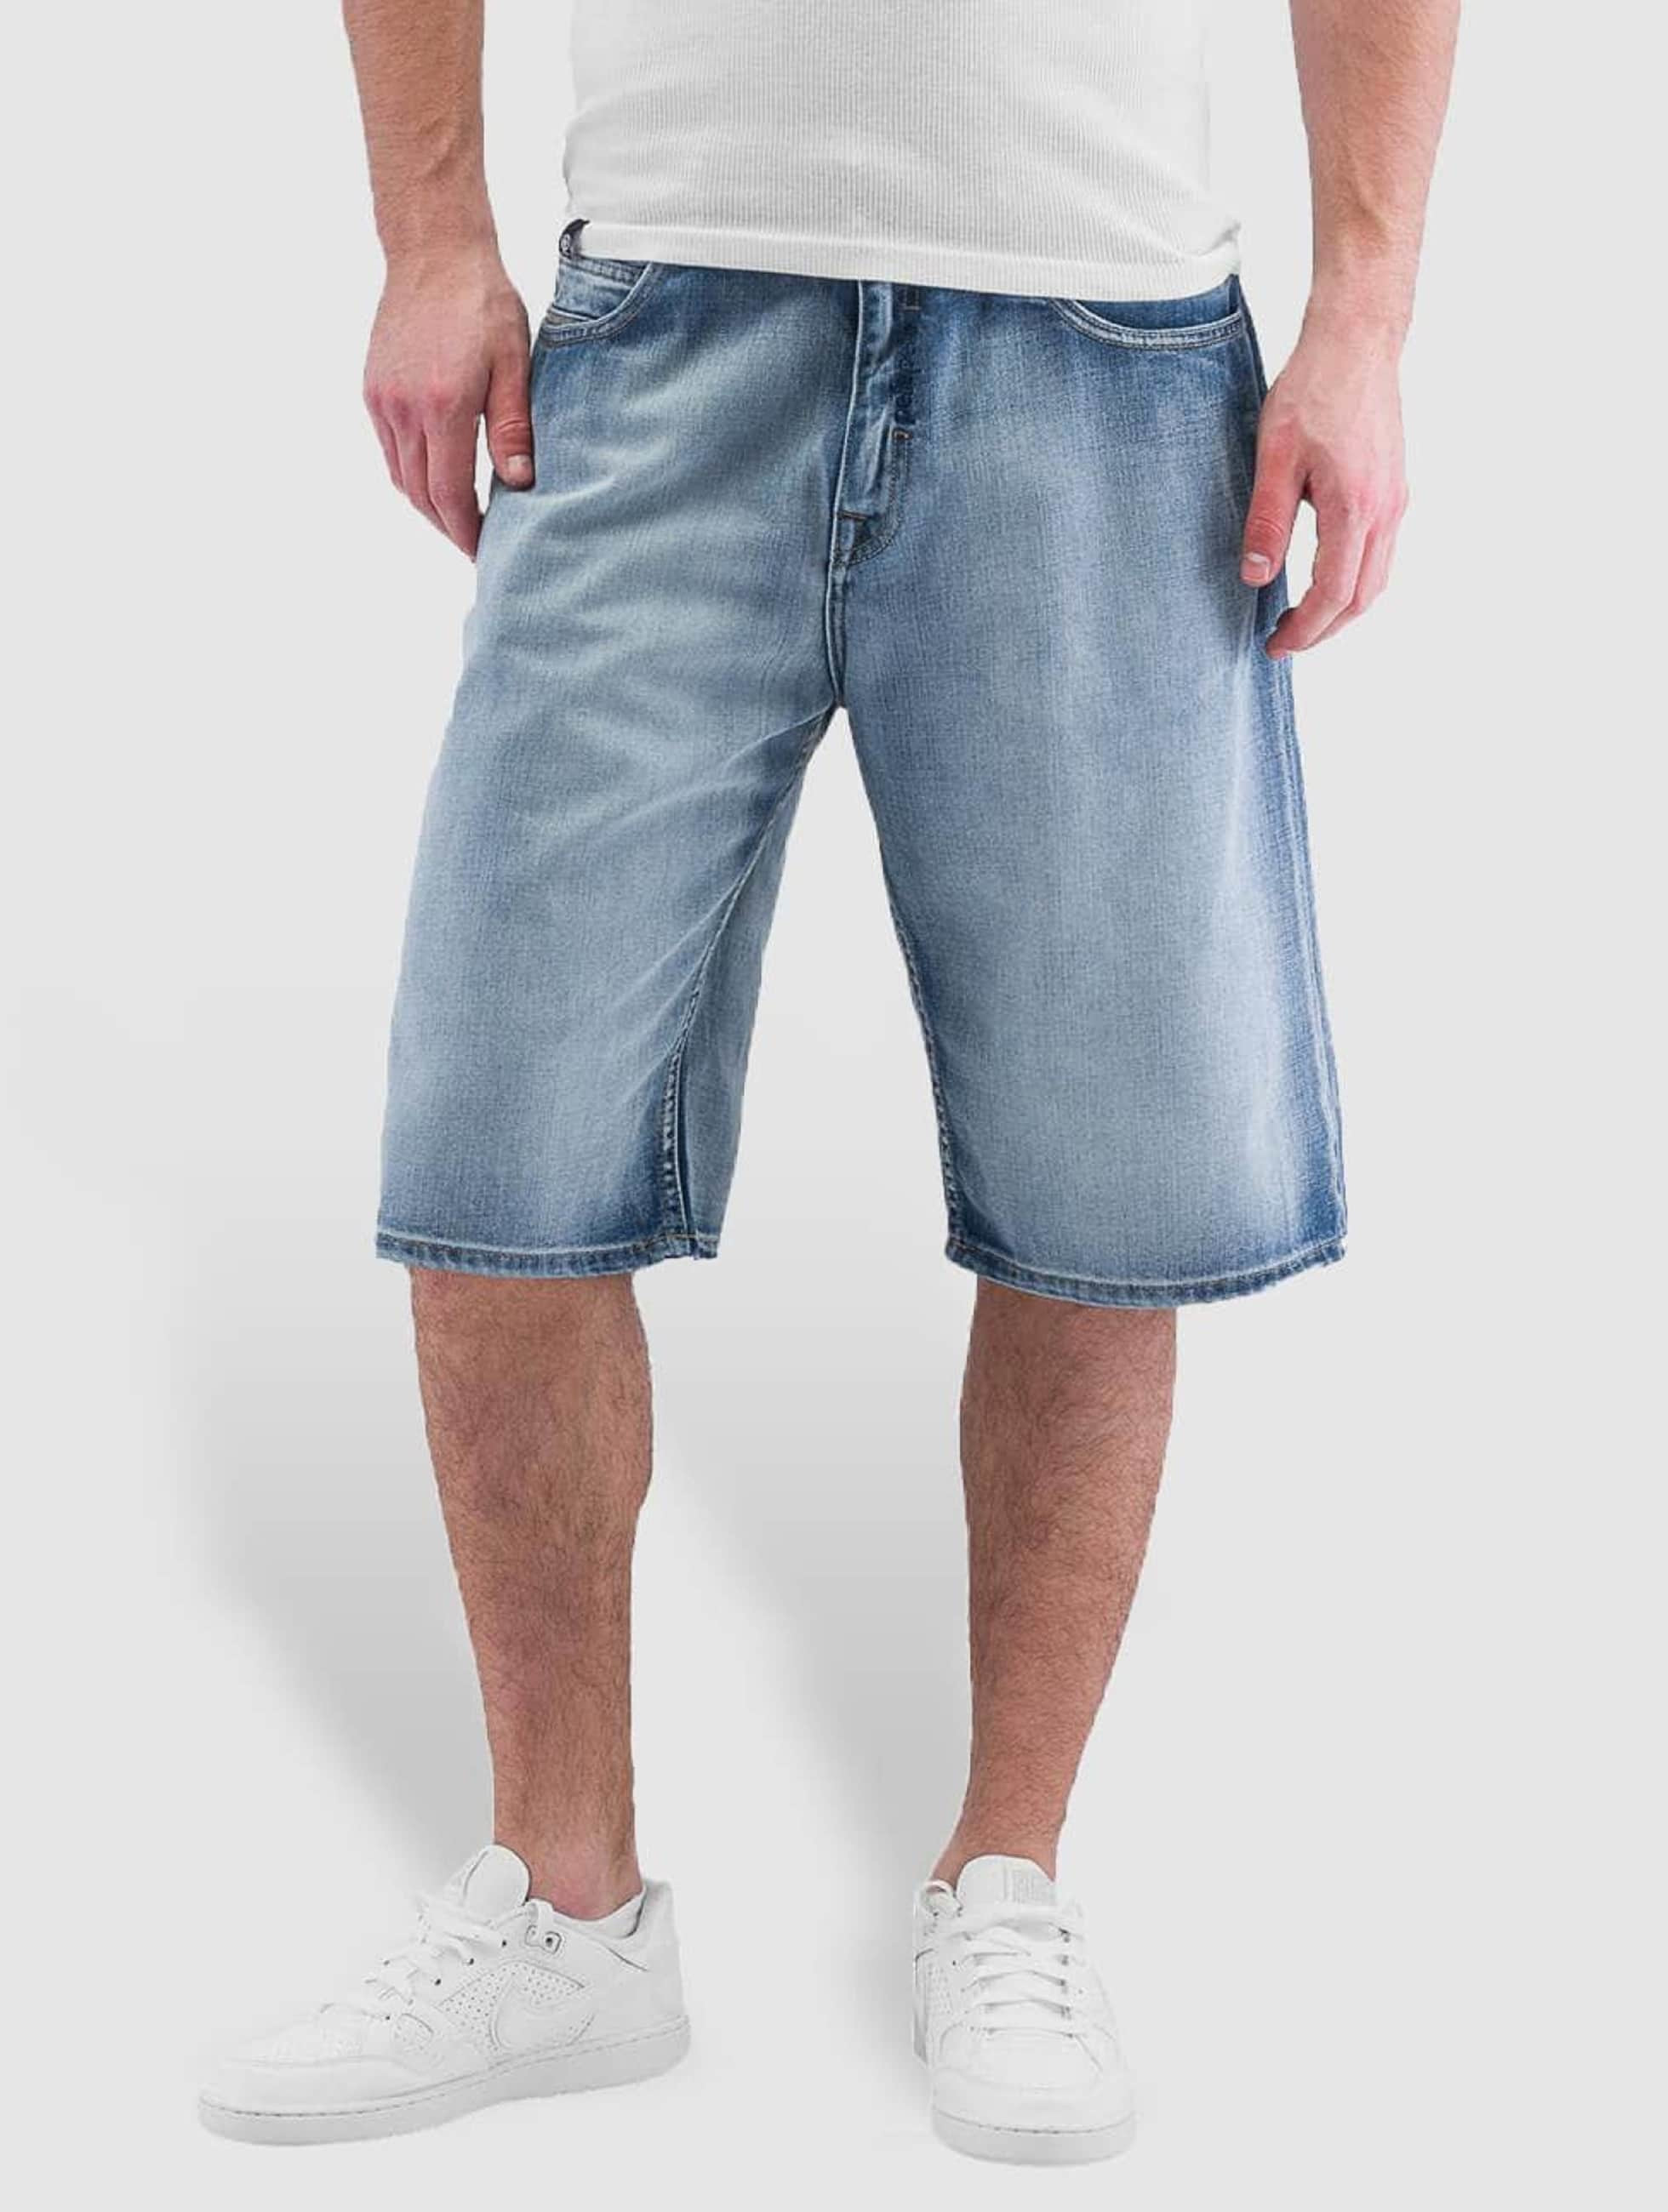 pelle pelle herren hosen shorts buster baggy denim ebay. Black Bedroom Furniture Sets. Home Design Ideas